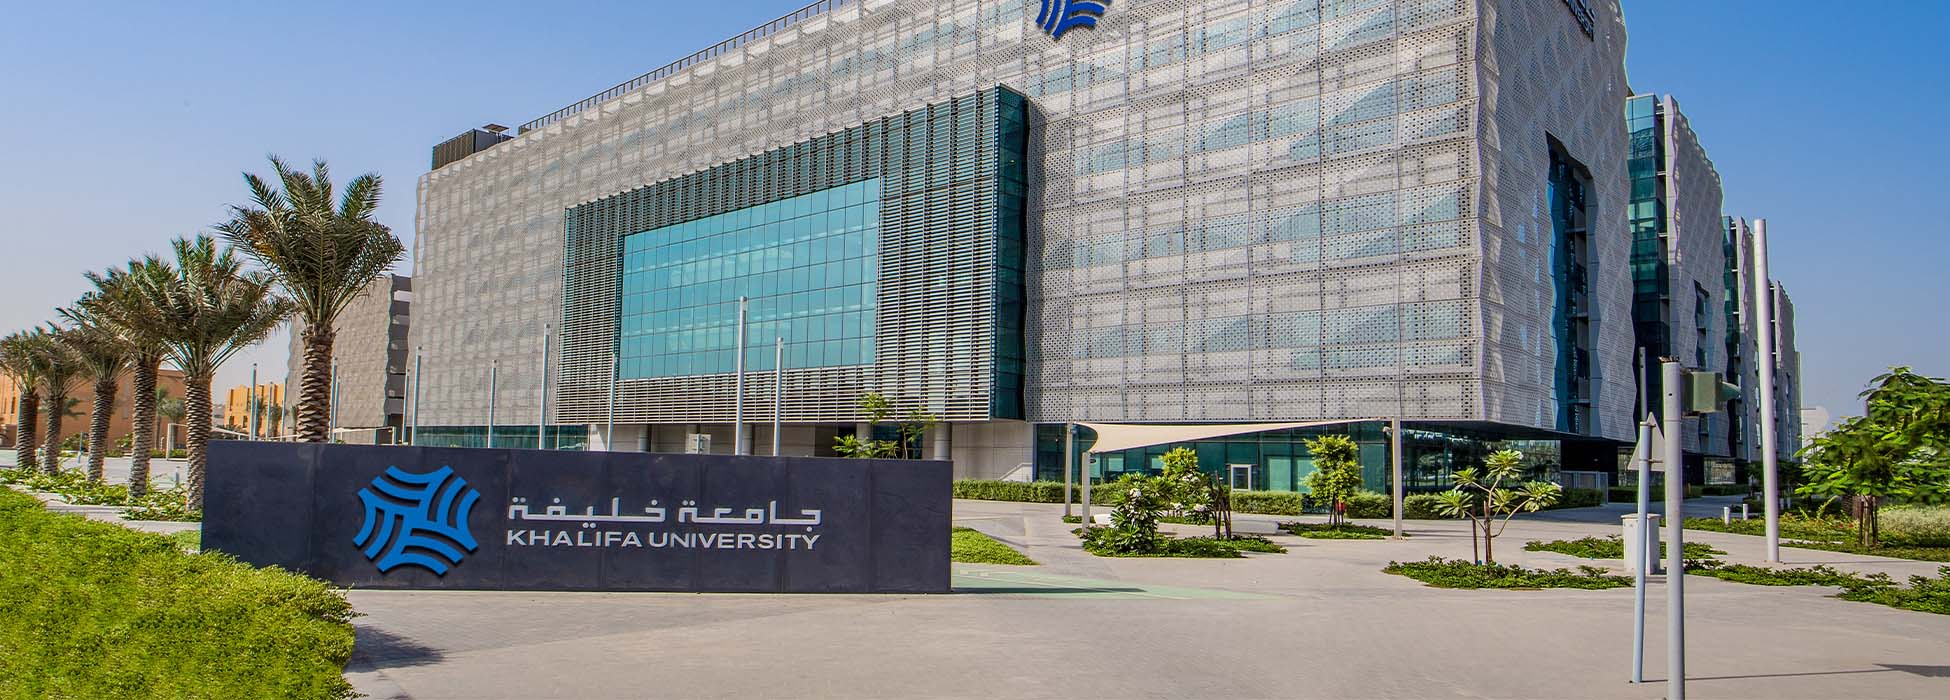 Khalifa University | World University Rankings | THE